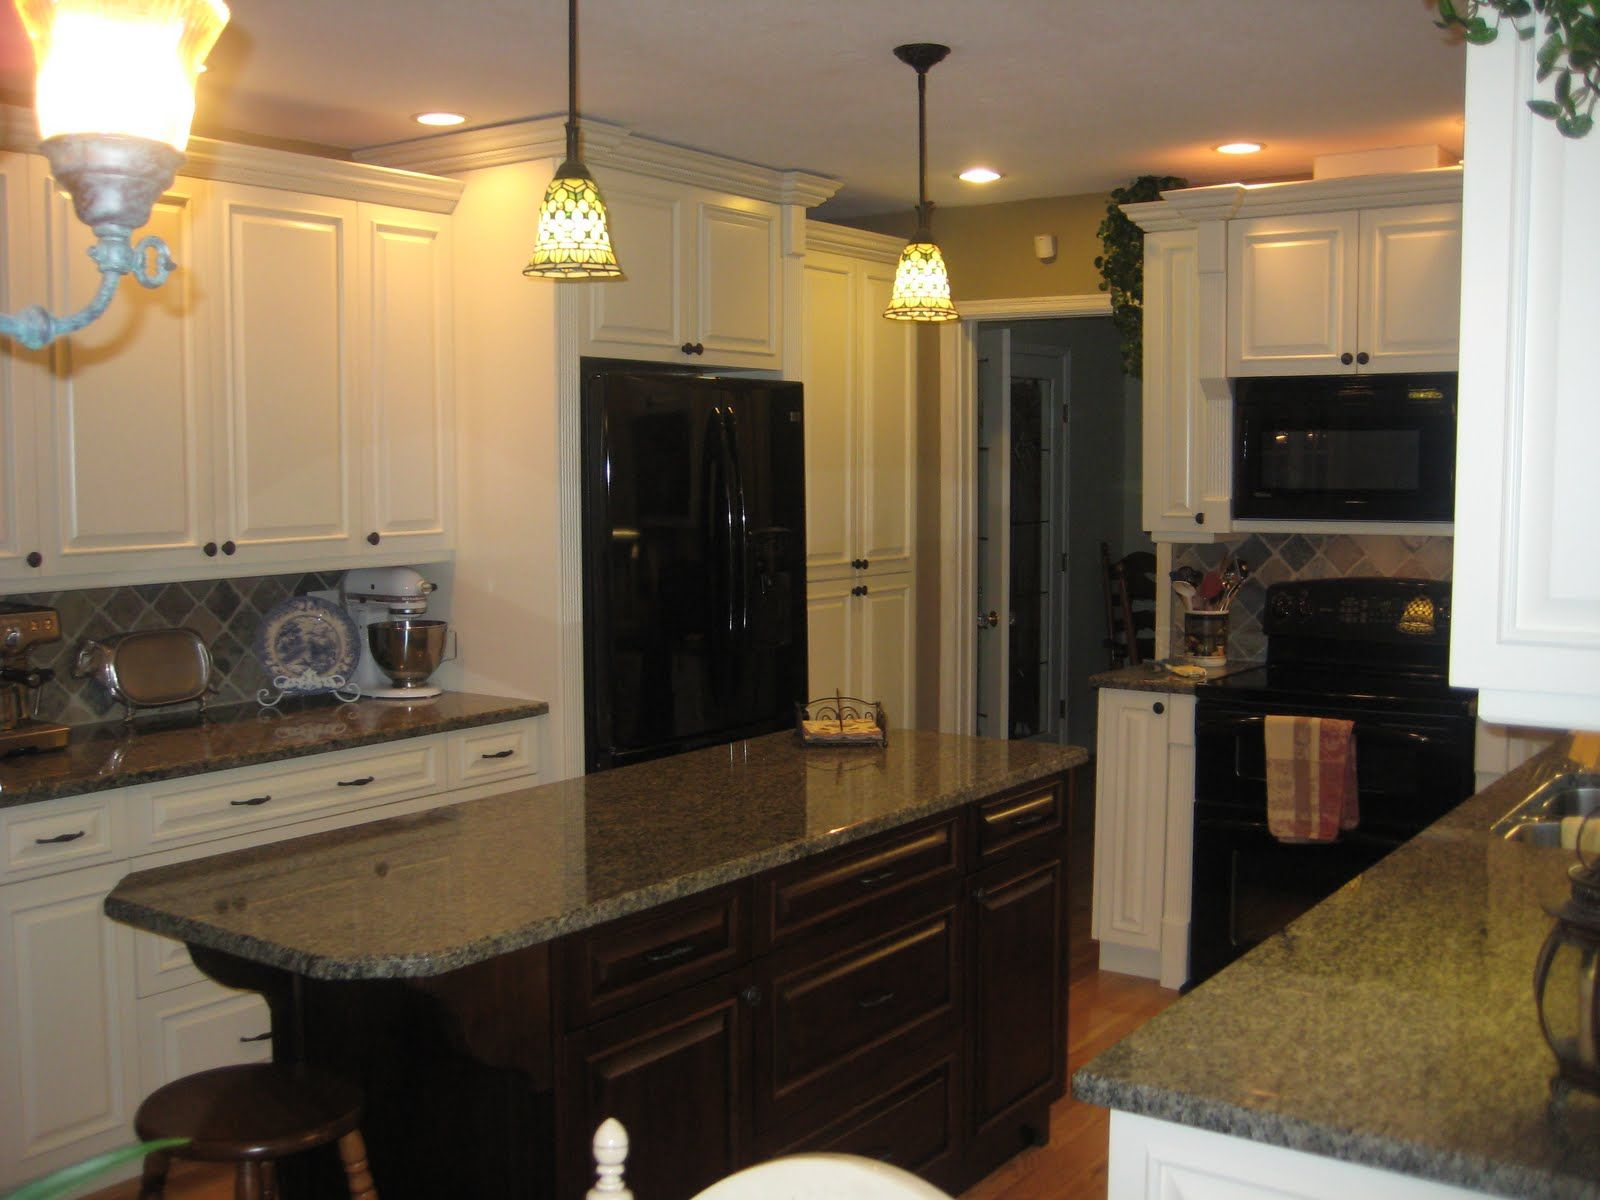 Best Images About Kitchen On Pinterest Fitted Kitchens White - Kitchen designs with black appliances